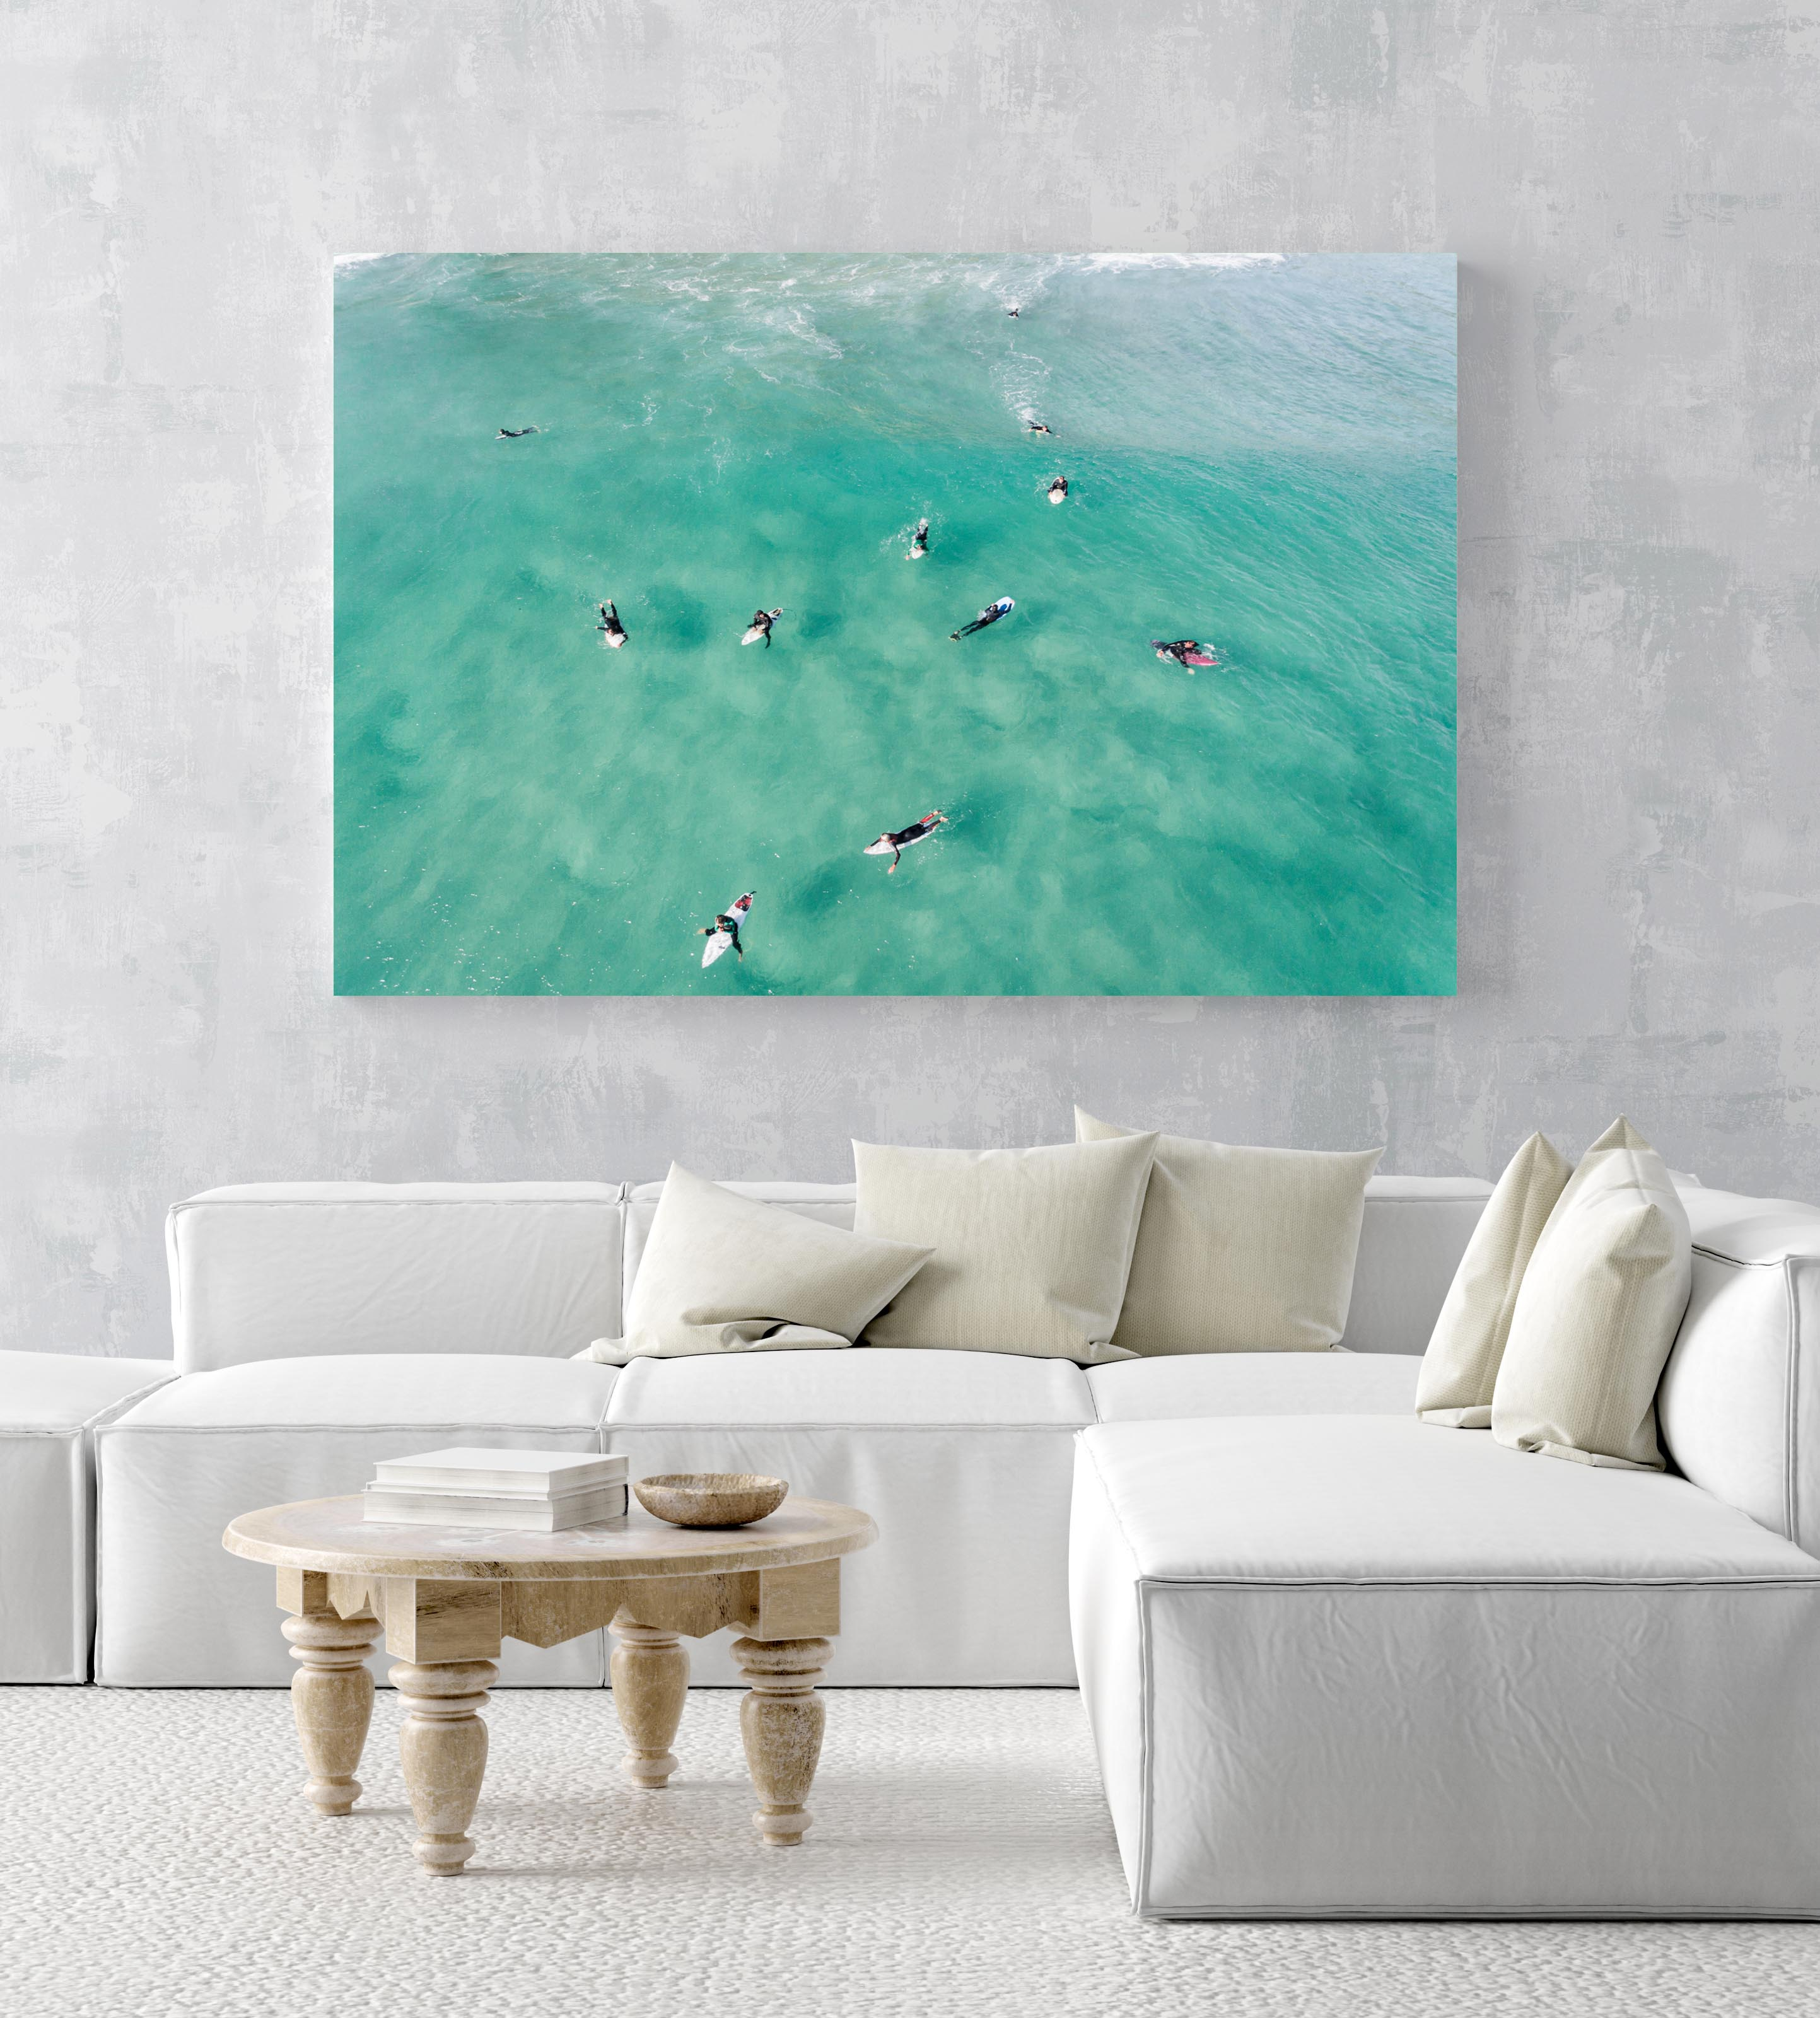 Aerial of surfers waiting and paddling for waves in sea in an acrylic/perspex frame